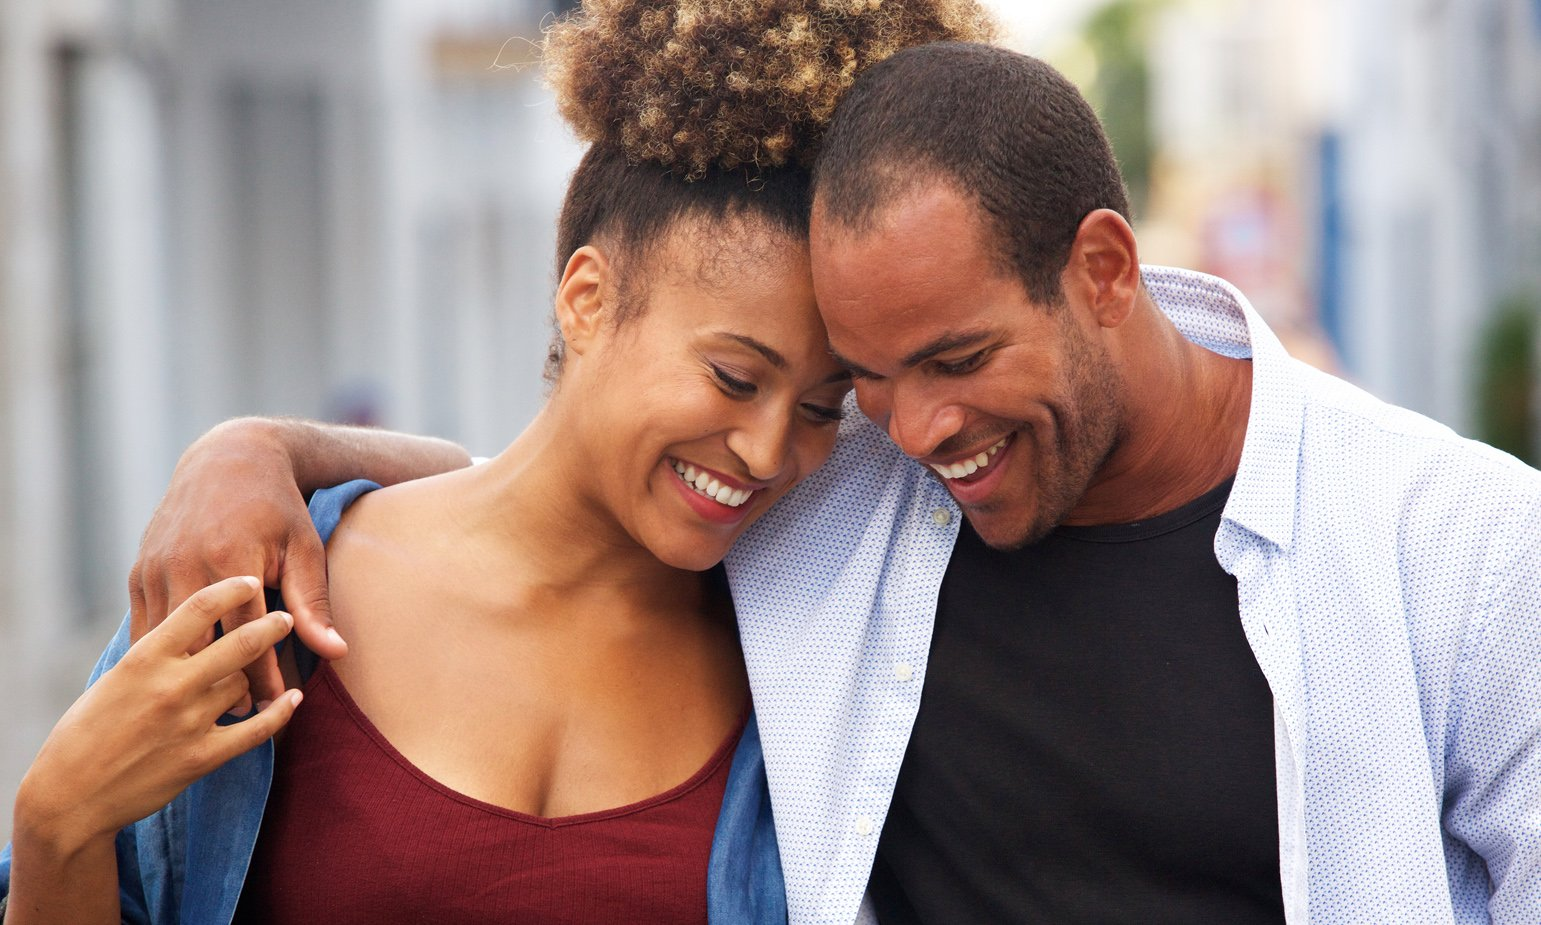 Weird Facts You Probably Didn't Know About Finding a Significant Other